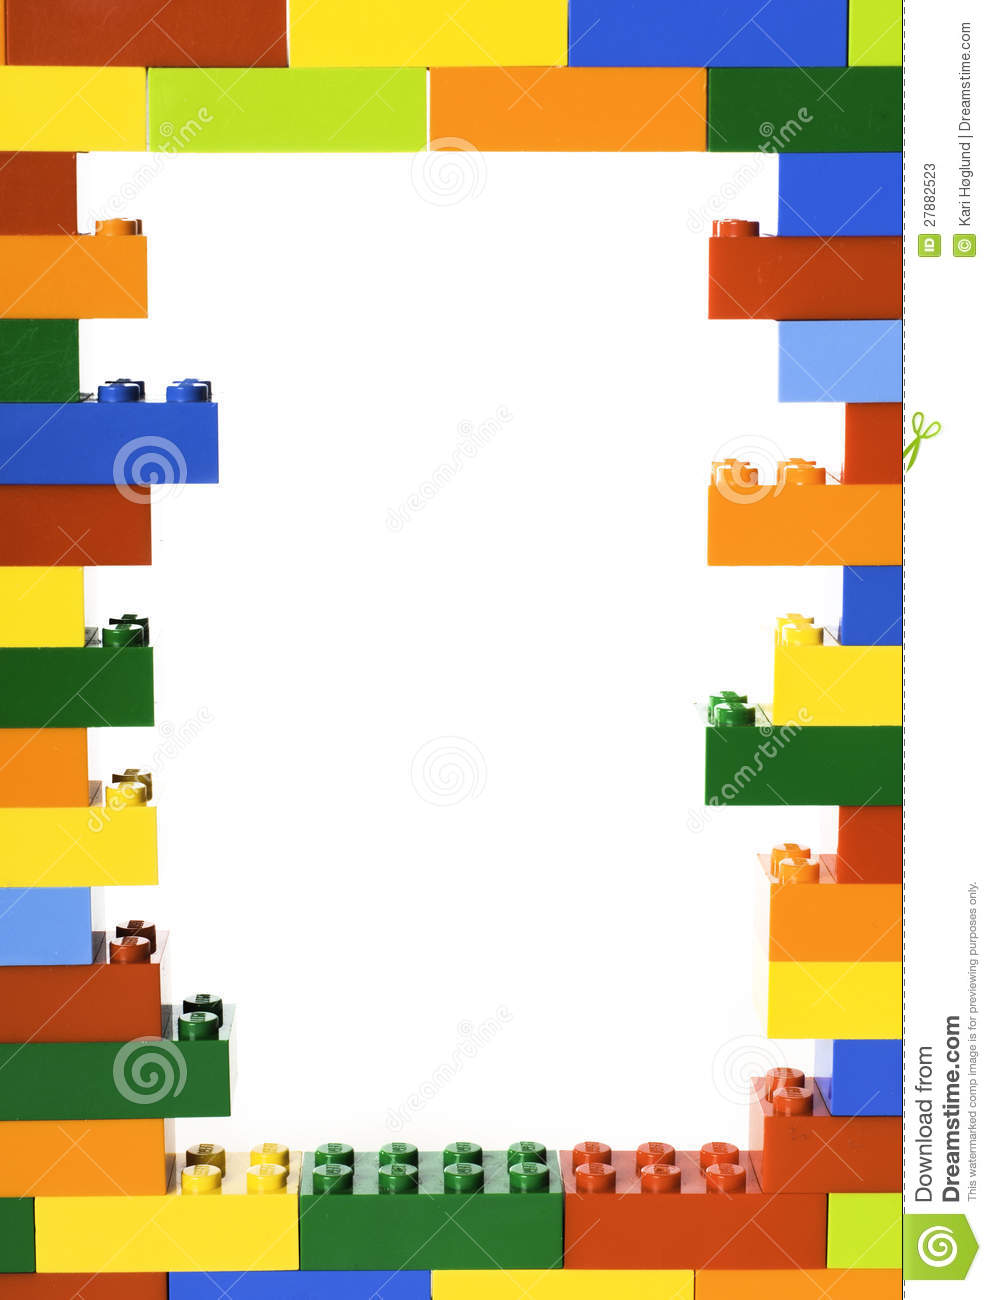 Building Blocks Border